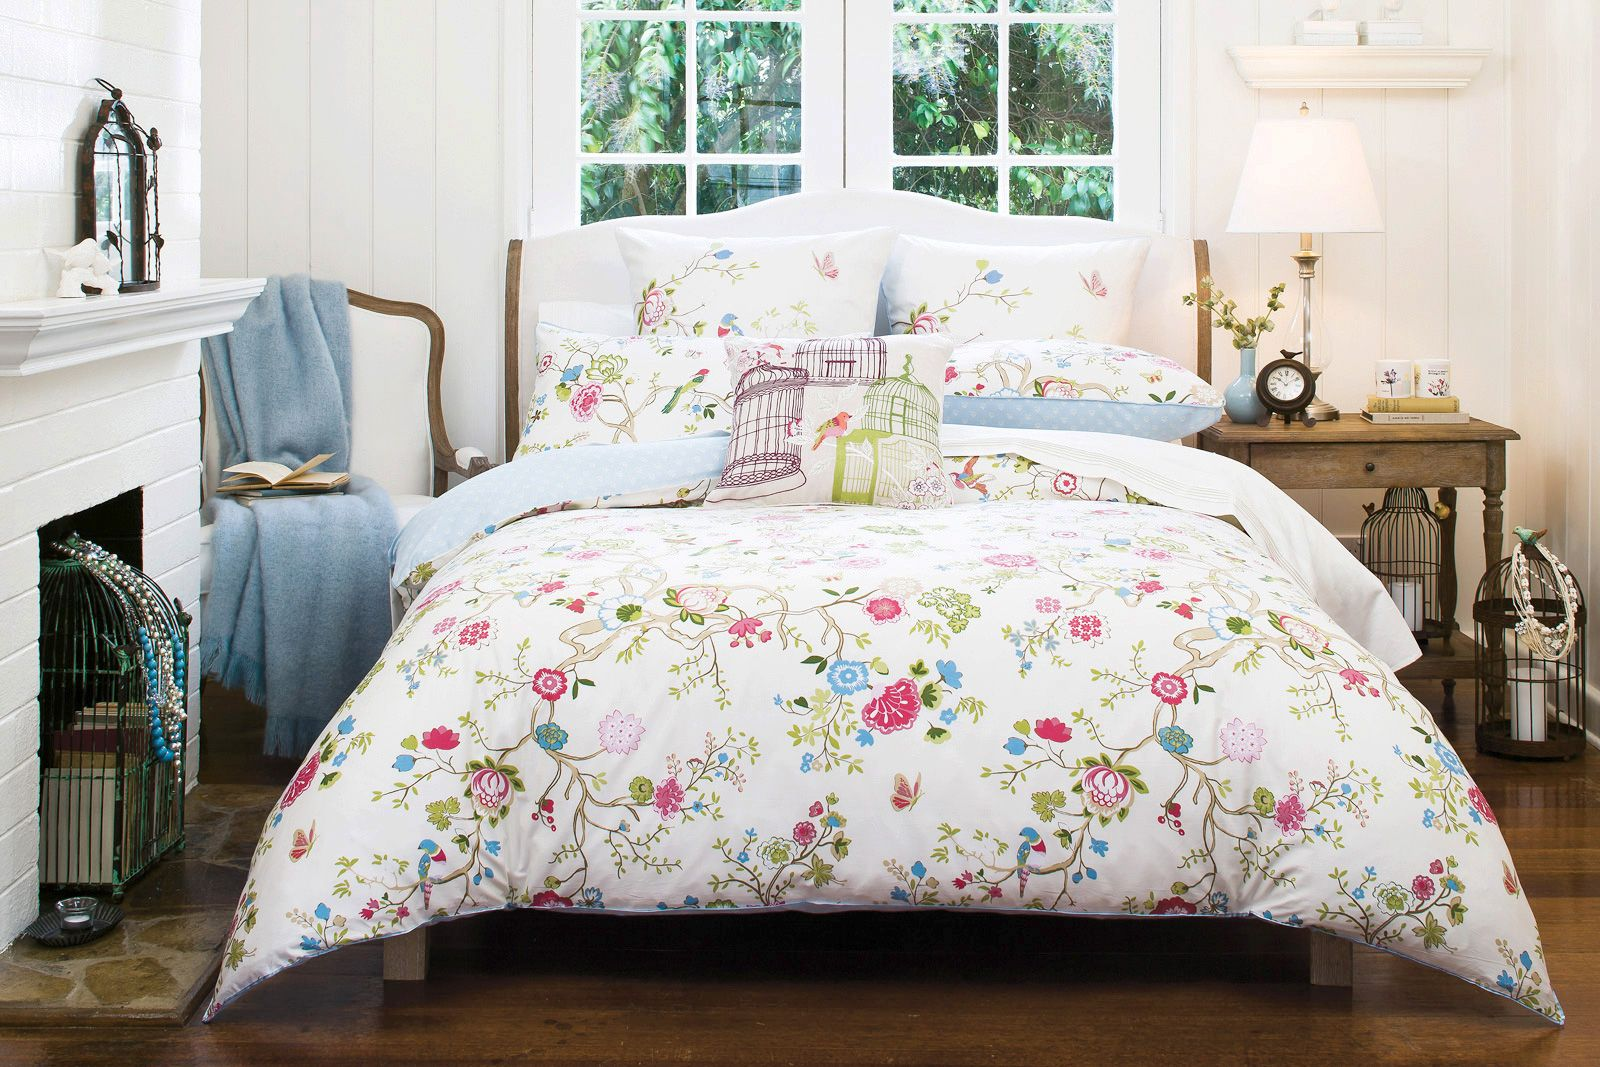 a whimsical and modern interpretation of traditional chinoiserie  - a whimsical and modern interpretation of traditional chinoiserie fabricsthis printed bed linen features embroidered birds